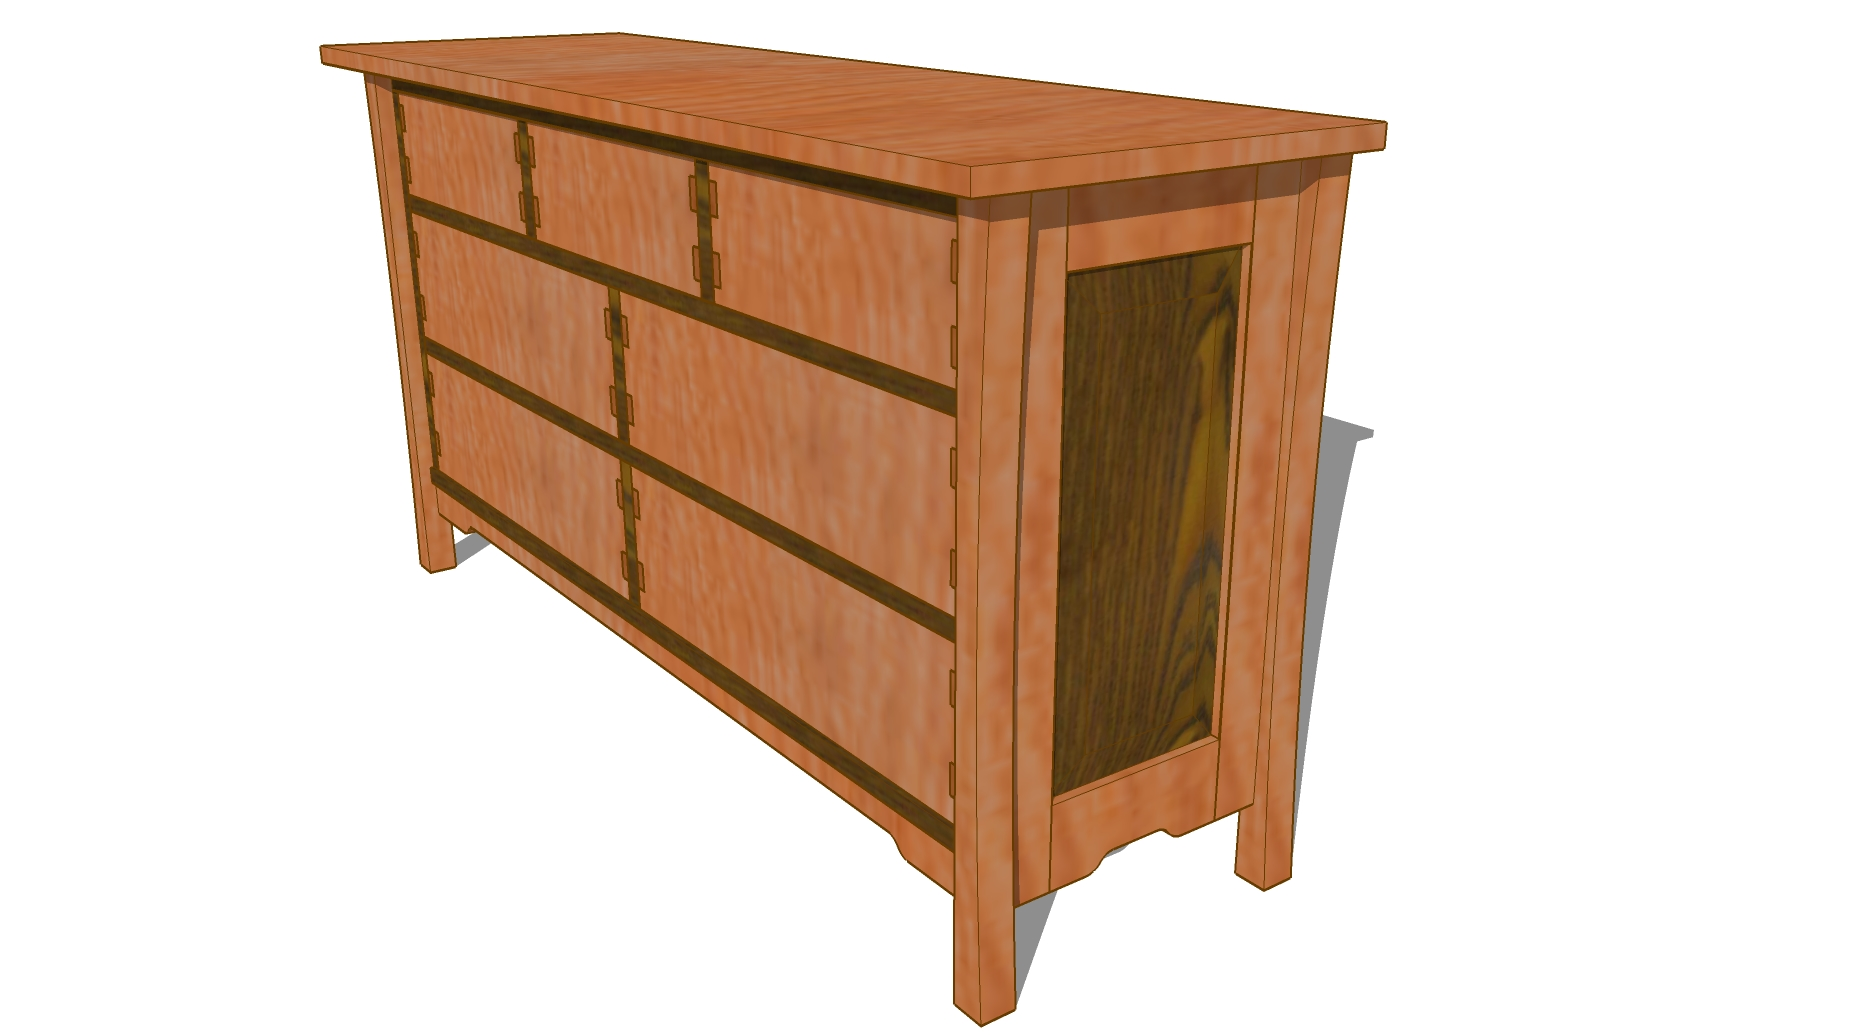 Designing A New Dresser For Our New Son